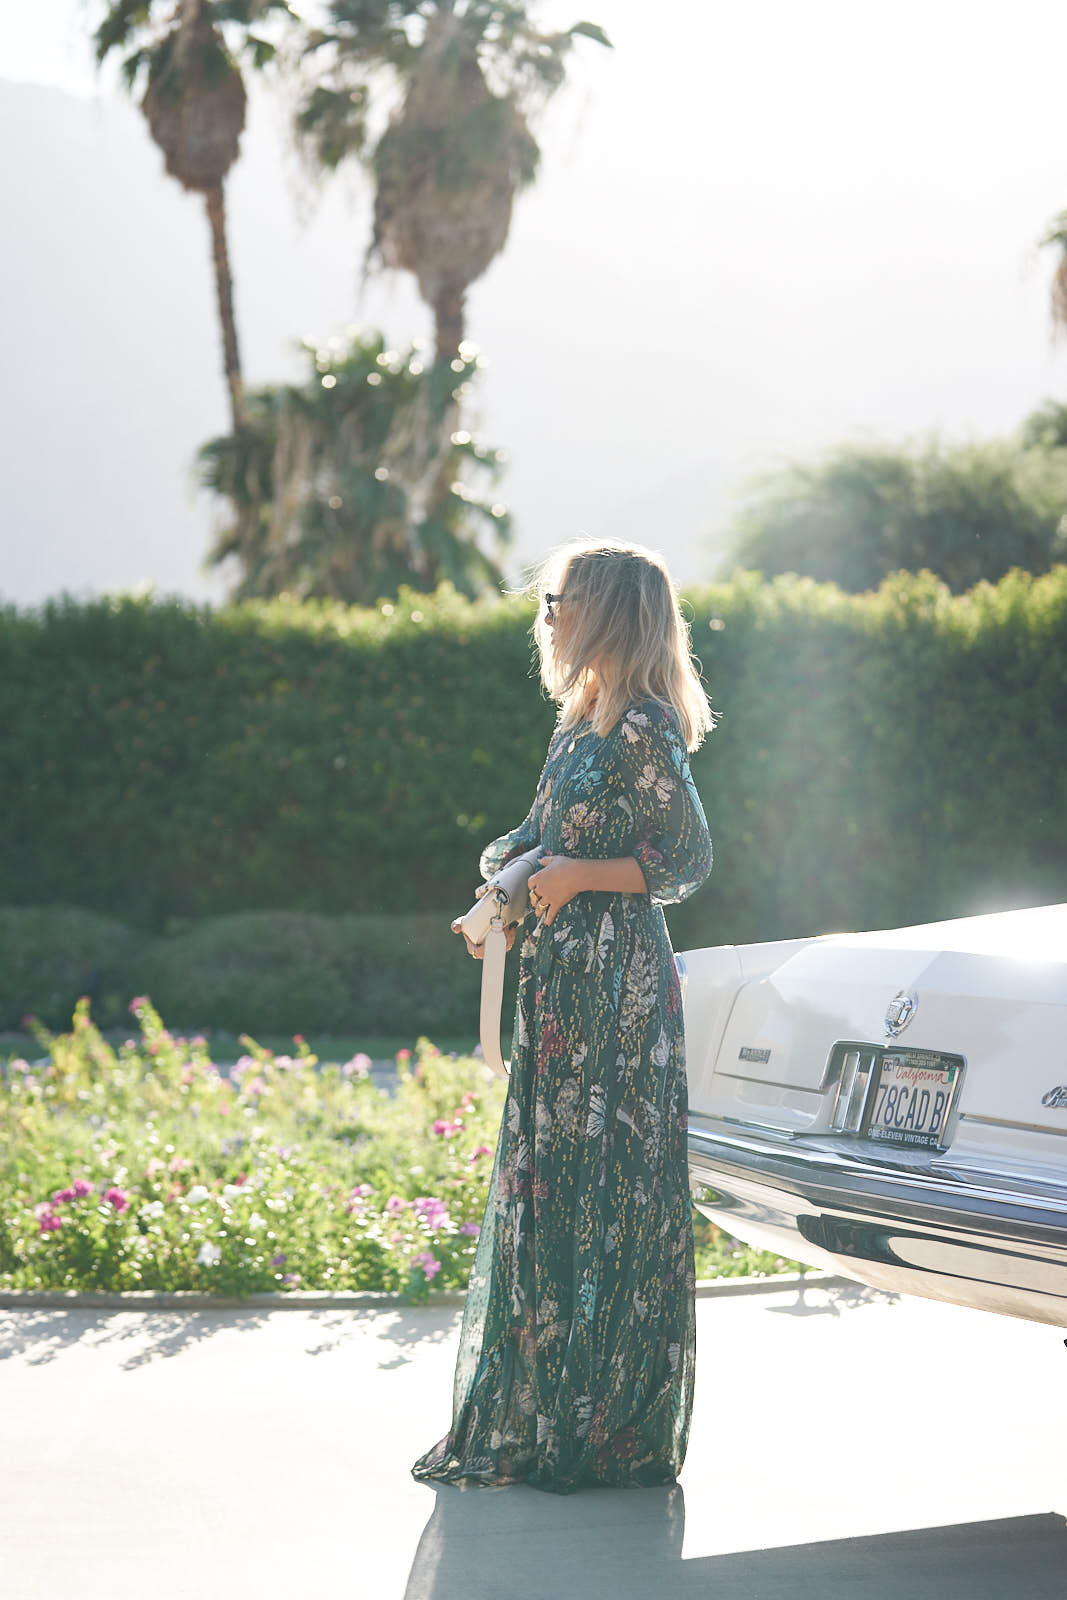 Lisa-Marie Mewes BEAR launch Frank Sinatra's House Palm Springs by Lost In Love Photography